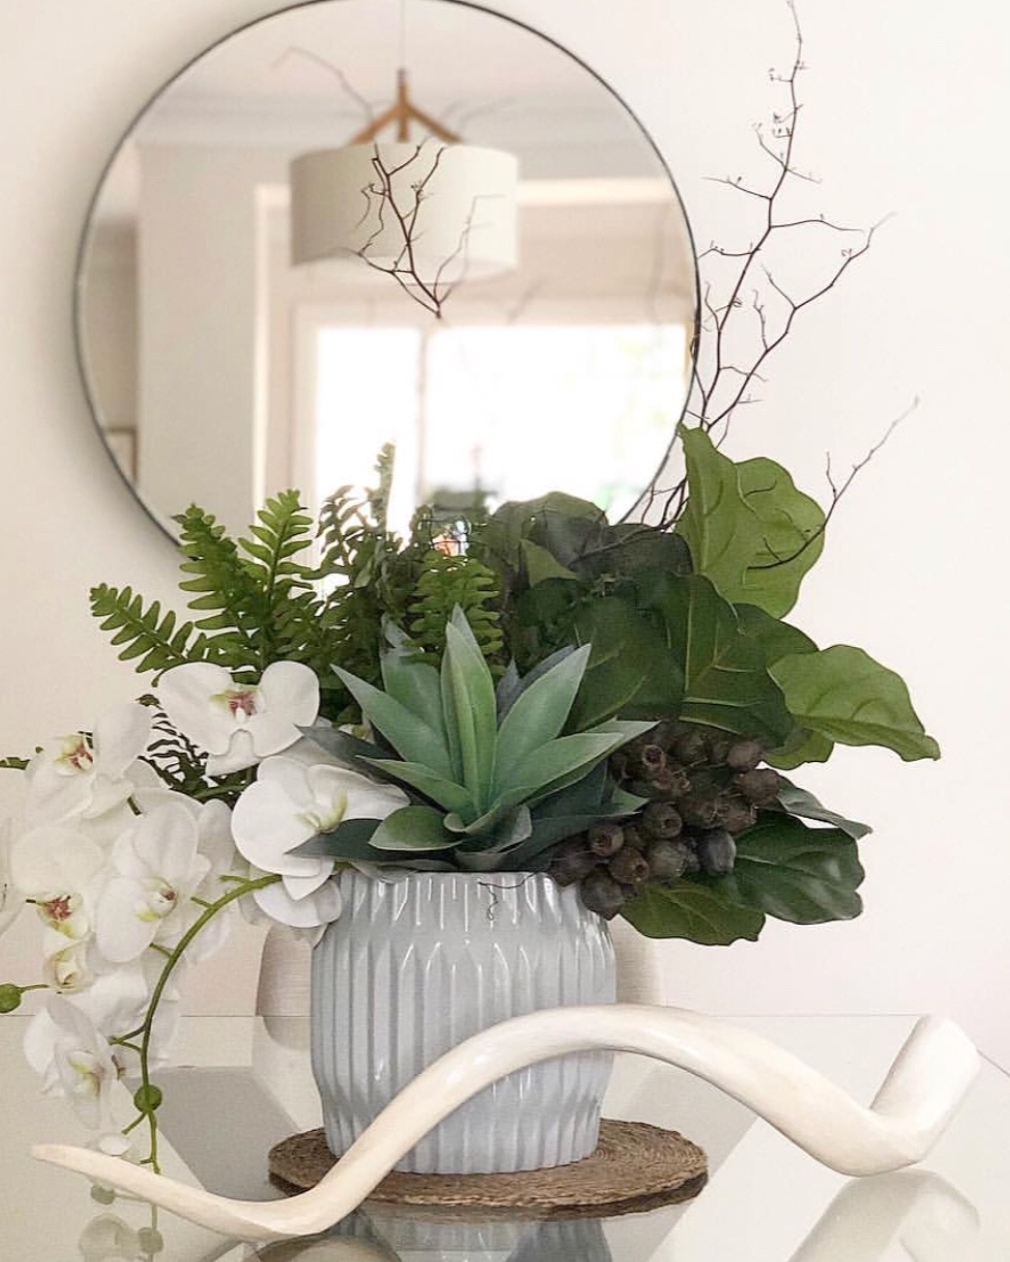 - Fresh FlowersAdding a fresh bunch of foliage/flowers brings life and warmth to any area of your home. Whether it be a simple arrangement or something more striking, any size helps to make you feel relaxed, feel welcomed and gives a sense of that 'home' feeling when buyers walk through your property. Placing a fresh arrangement in the entry way helps create an unforgettable first impression and simply displaying them in your living, dining and bedroom spaces will help add a fresh touch and a pop of colour, creating a welcoming, harmonious flow throughout.We love using long lasting foliage with lots of green that lasts the distance throughout our clients' sale campaign. This is not only pleasing to the eye but great on the budget as well.Image & Styling by Styleness